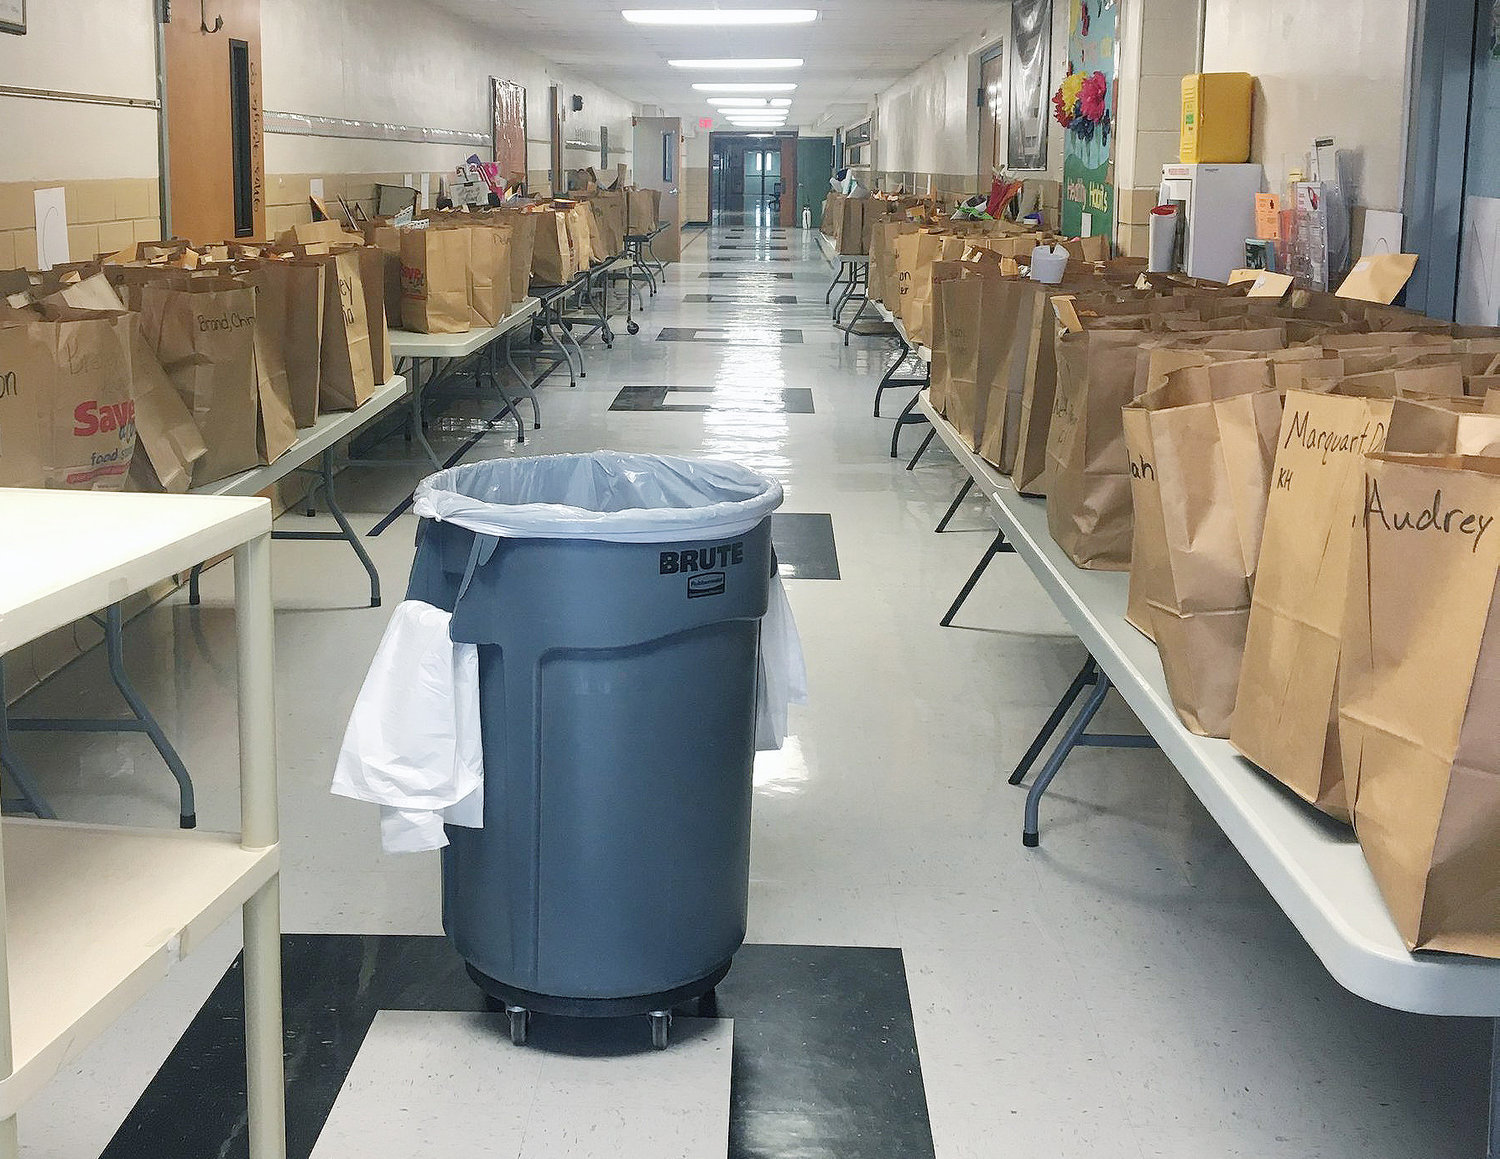 Carefully labeled bags filled with lessons, library books and the personal contents of student's desks lined the hallway at Gerald Elementary School Monday.